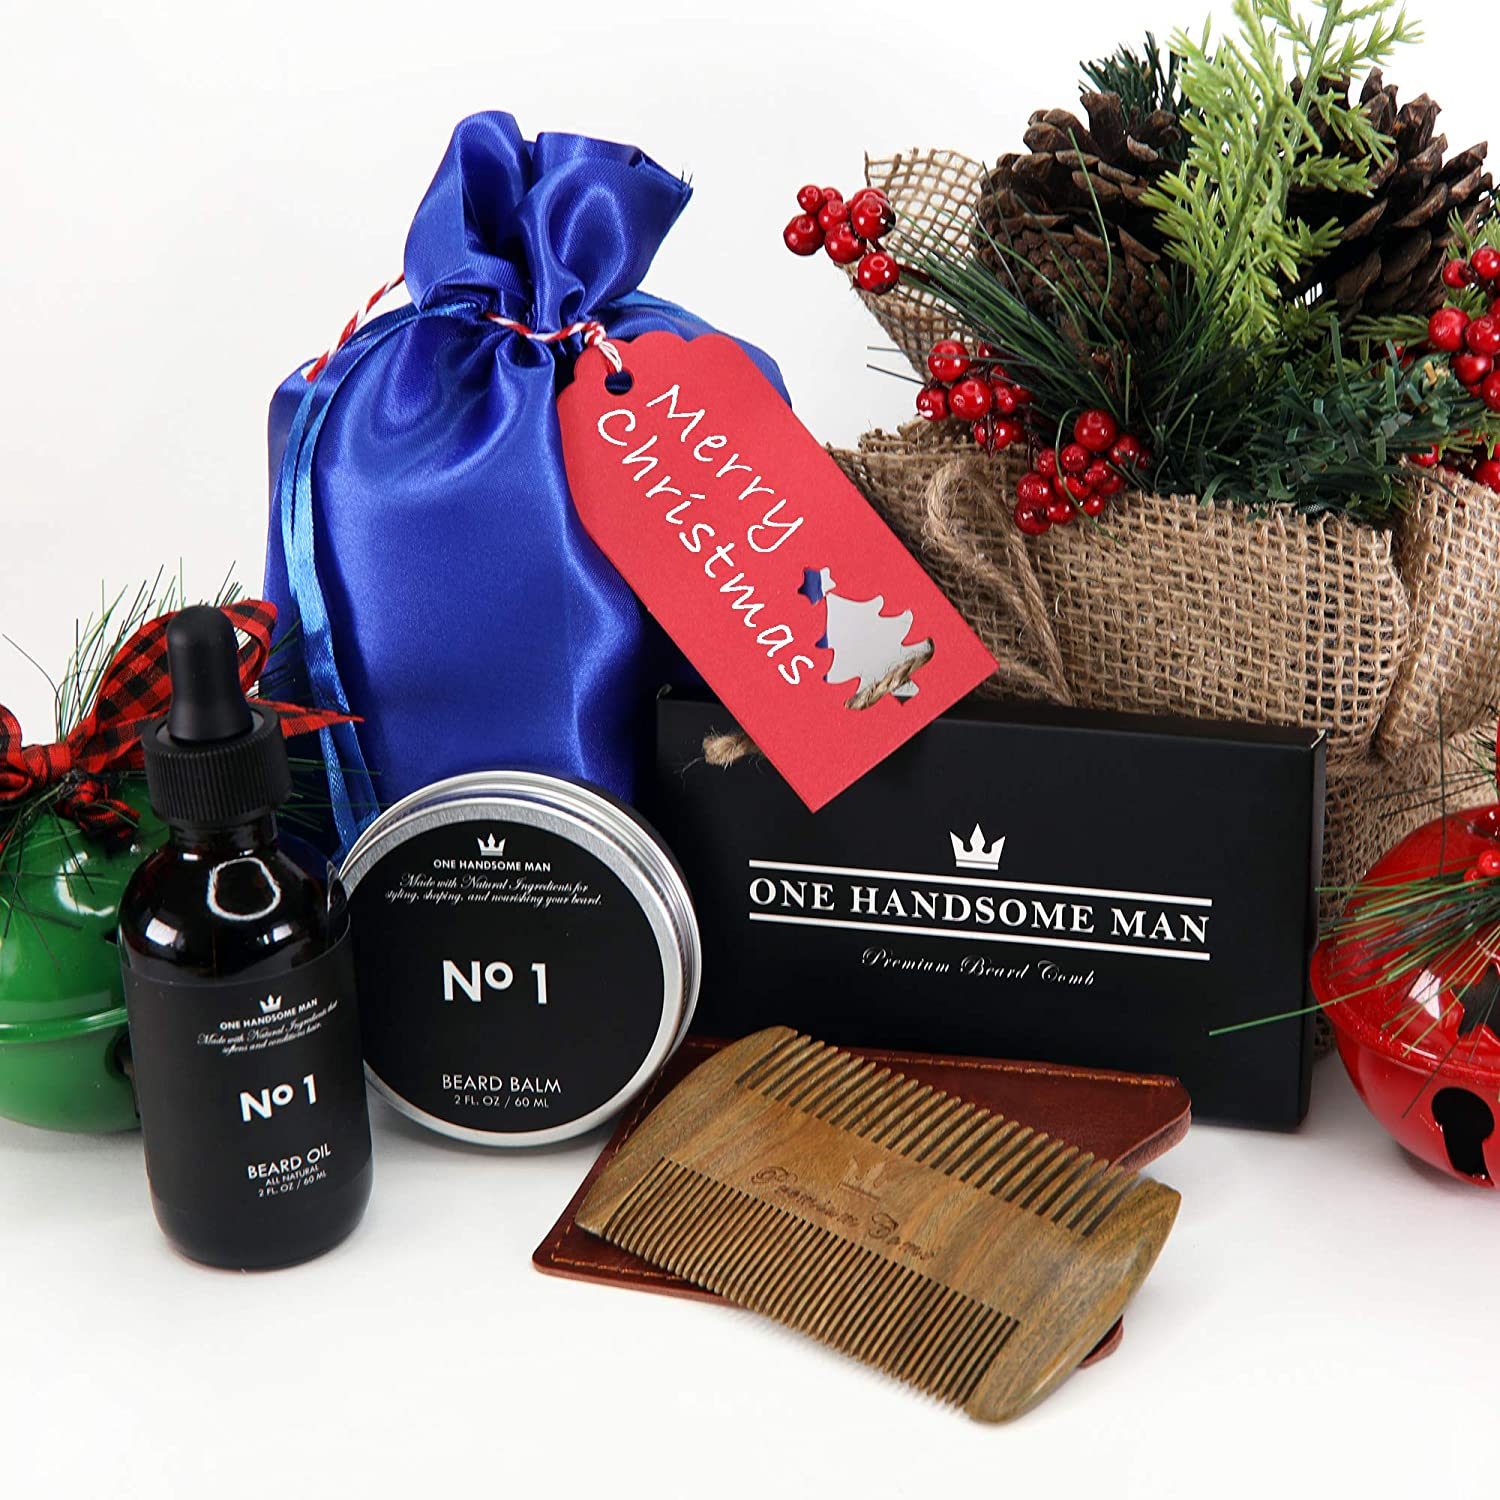 910803f3319a Amazon.com  Beard Care Gift Set for Men by One Handsome Man - Beard  Grooming Kit Includes Beard Comb